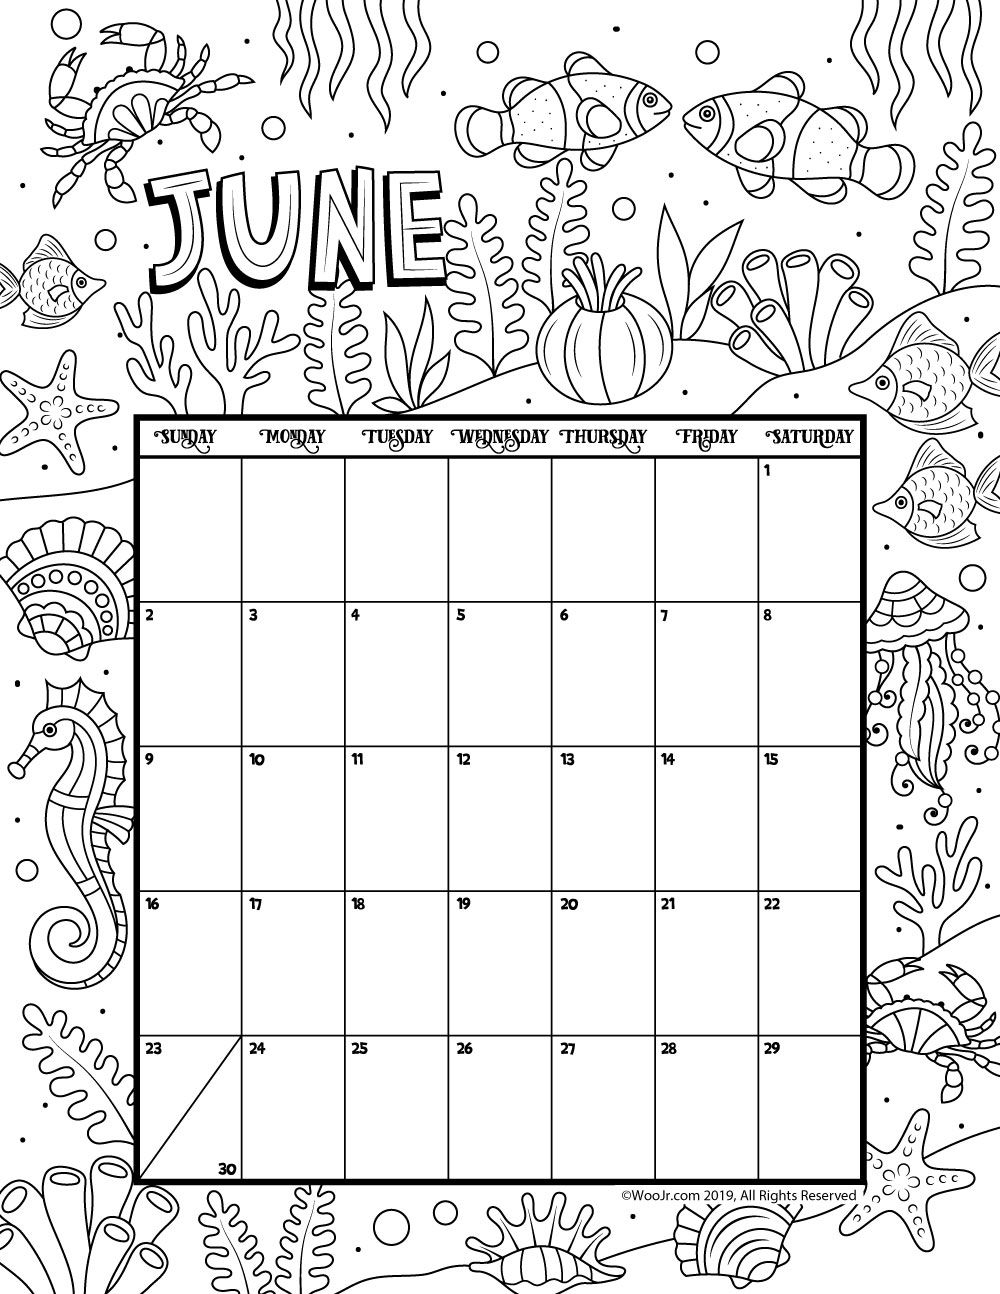 June 2019 Coloring Calendar Printable Coloring Calendar Pages